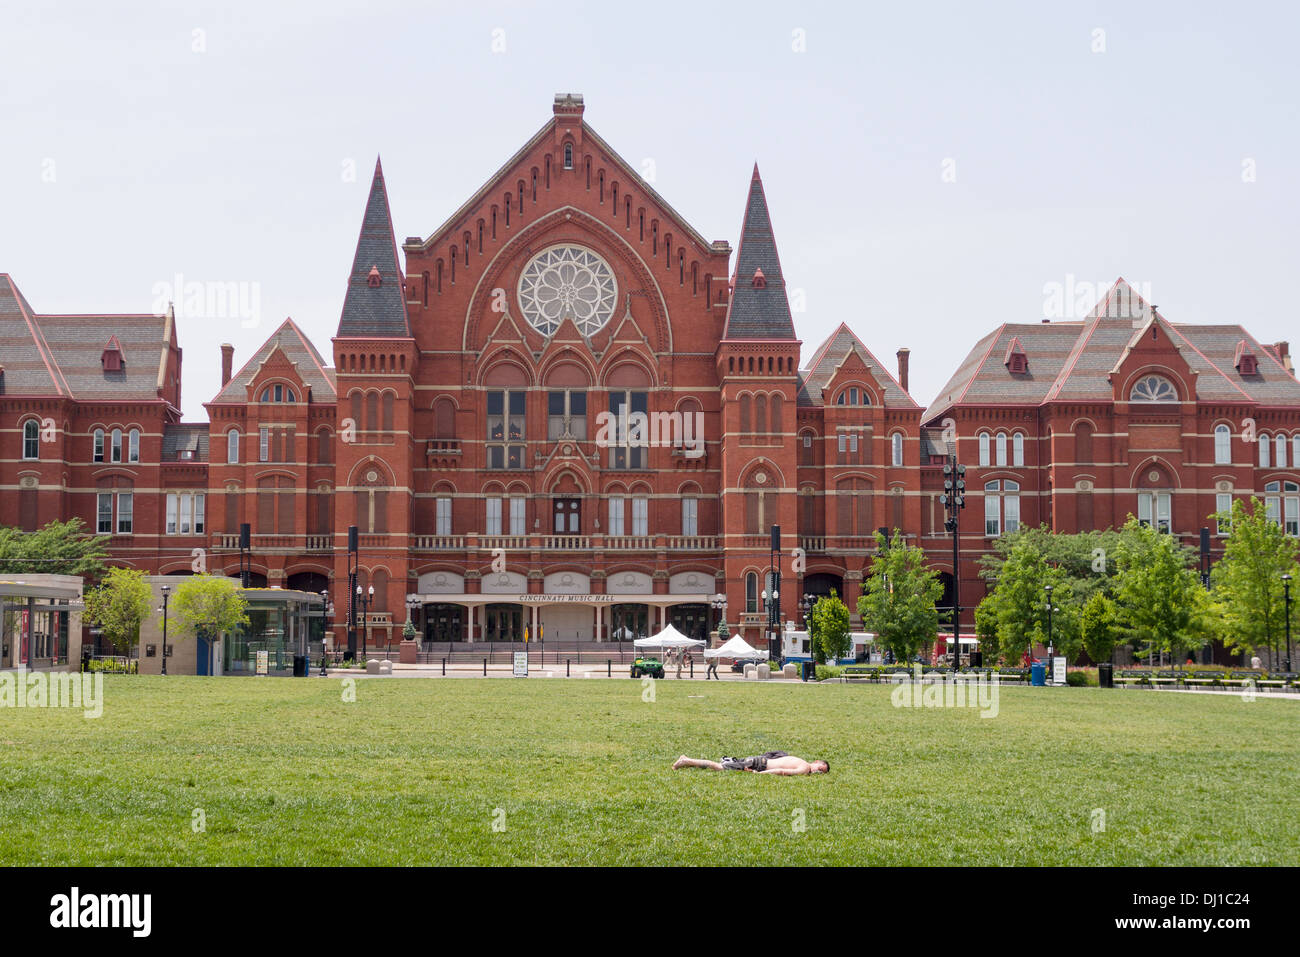 Cincinnati Music Hall with Sunbather. A young man catches a few spring rays on the lawn in front of the red brick Stock Photo